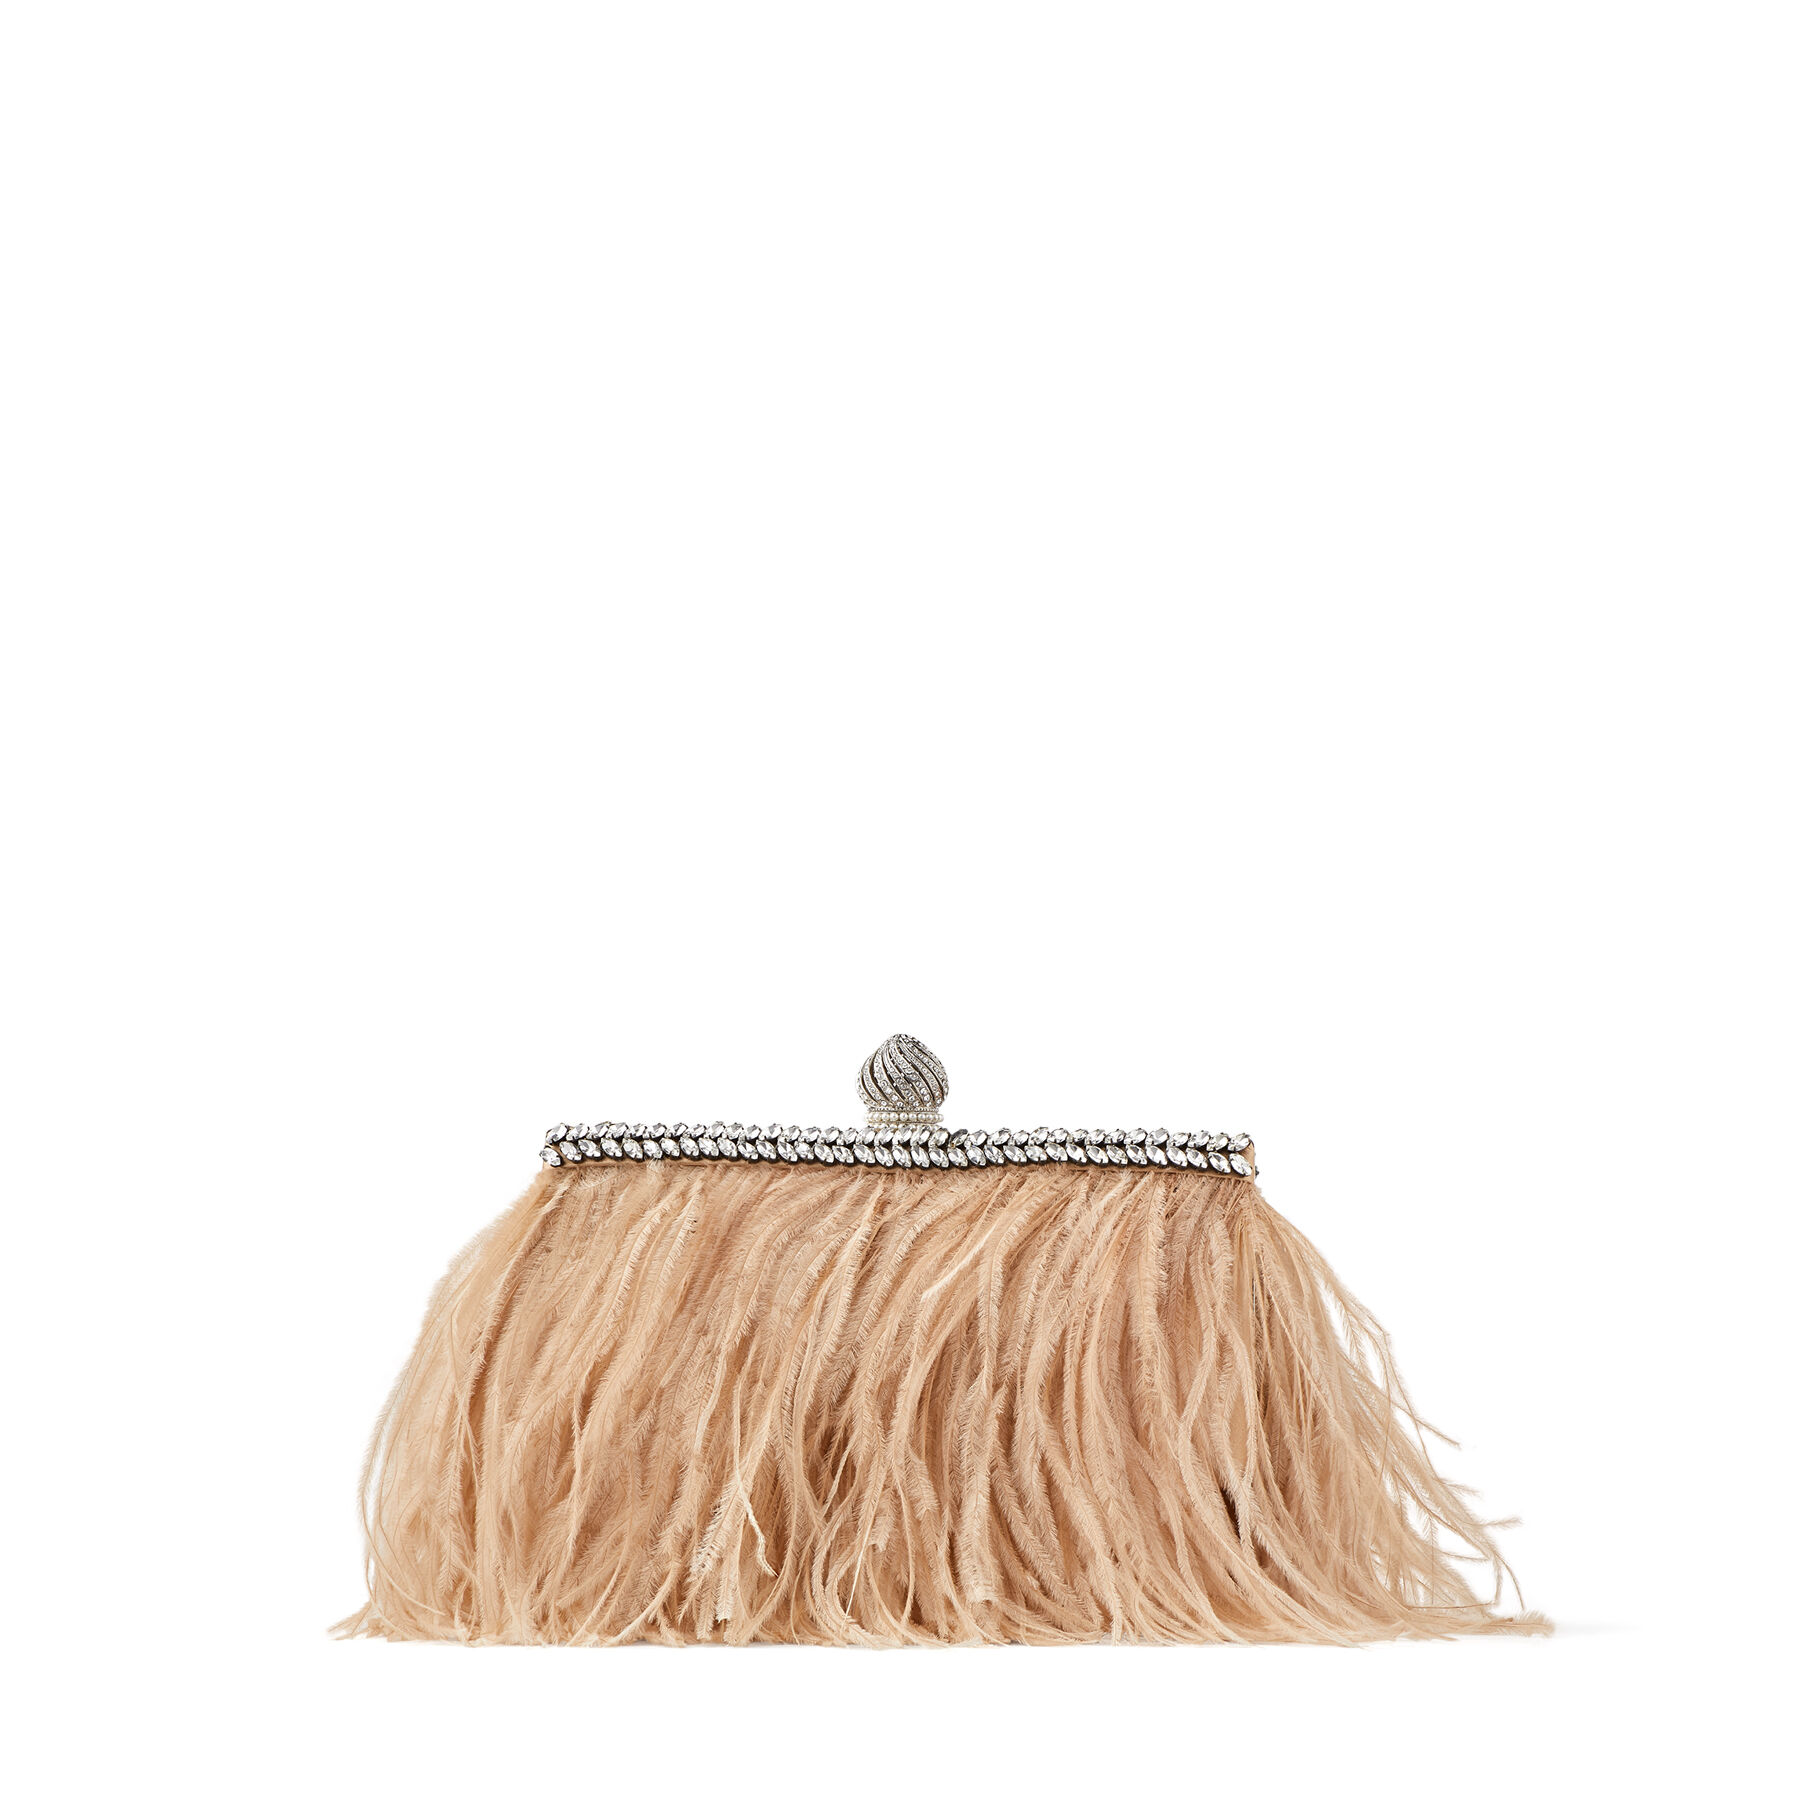 CELESTE/S - Sand Rose Satin Clutch Bag with Ostrich Feathers and Crystals